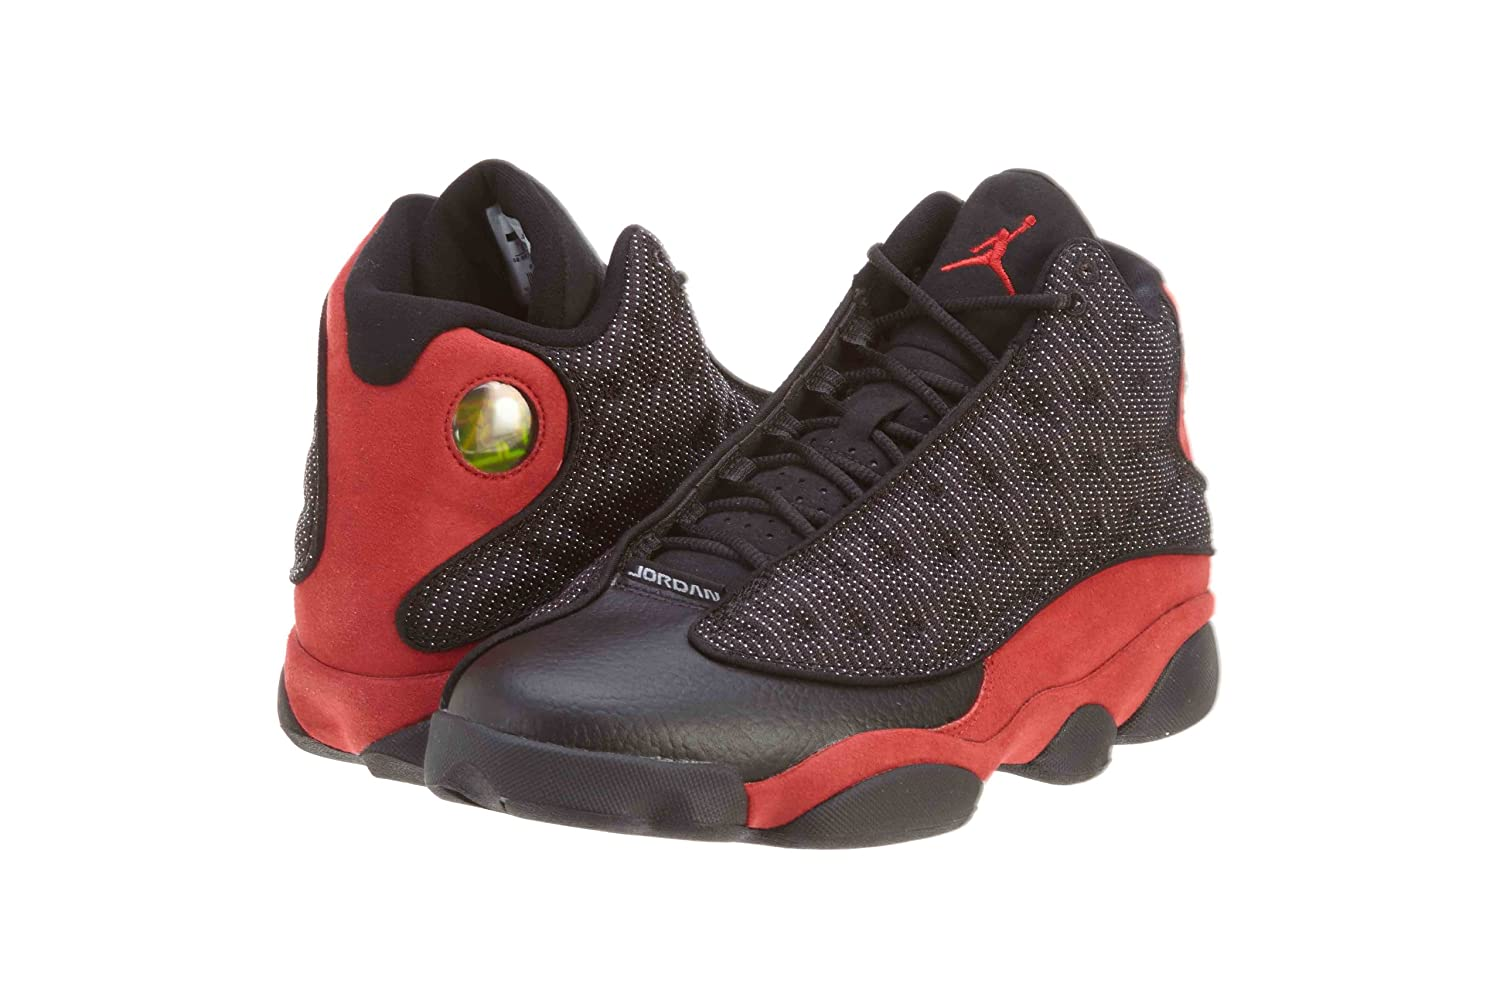 Amazon.com | Nike Mens Air Jordan Retro 13 "|1500|1000|?|False|9108f0c7a9bc3e2dcf5892c8bbb92b56|False|UNLIKELY|0.33949100971221924